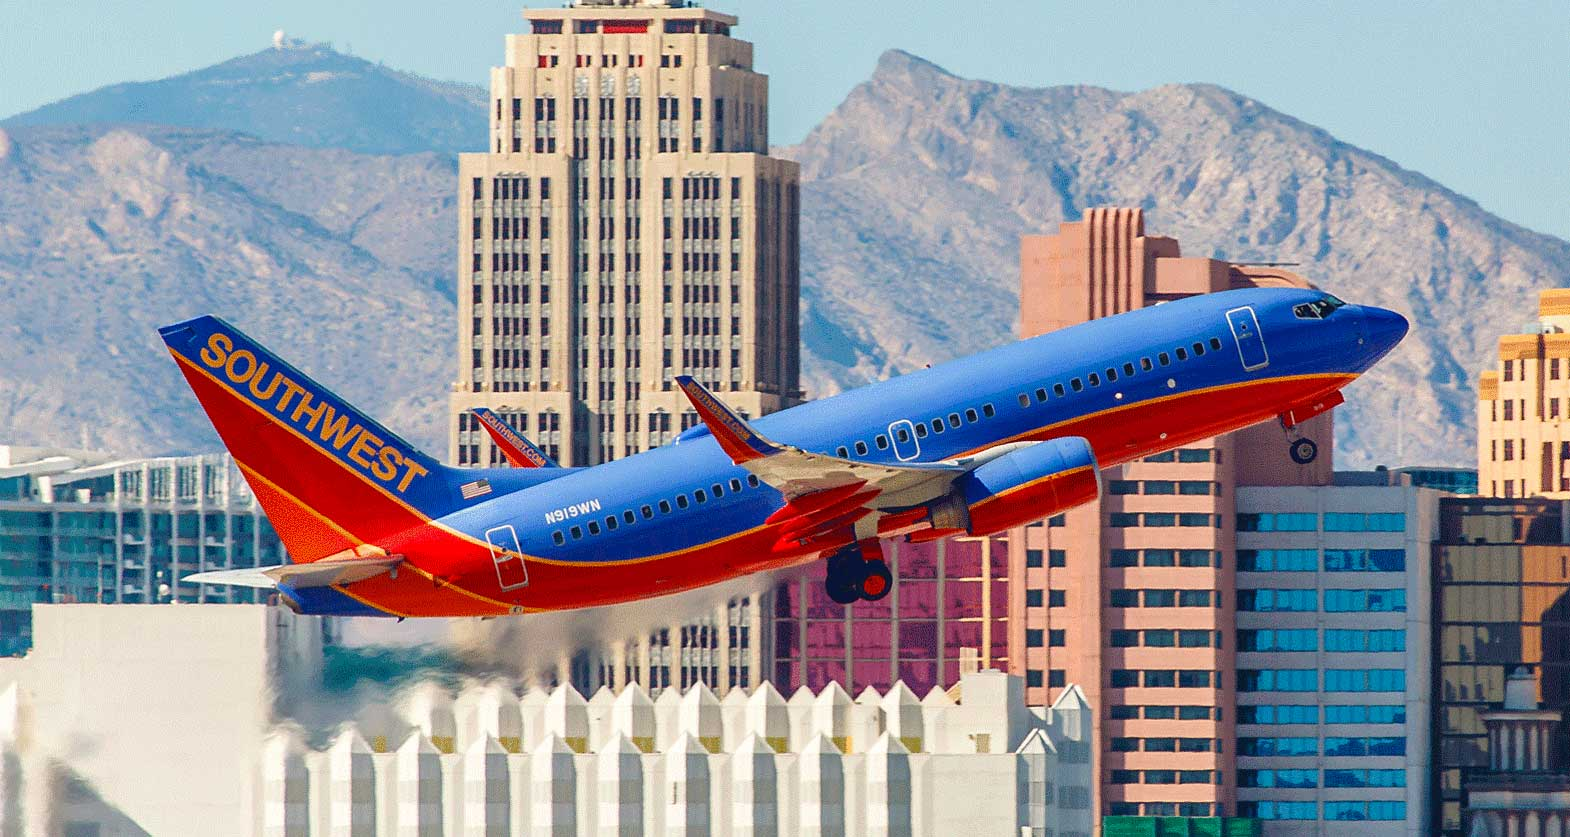 Southwest Airlines Boeing 737 inn takeoff climb; tall buildings in background.